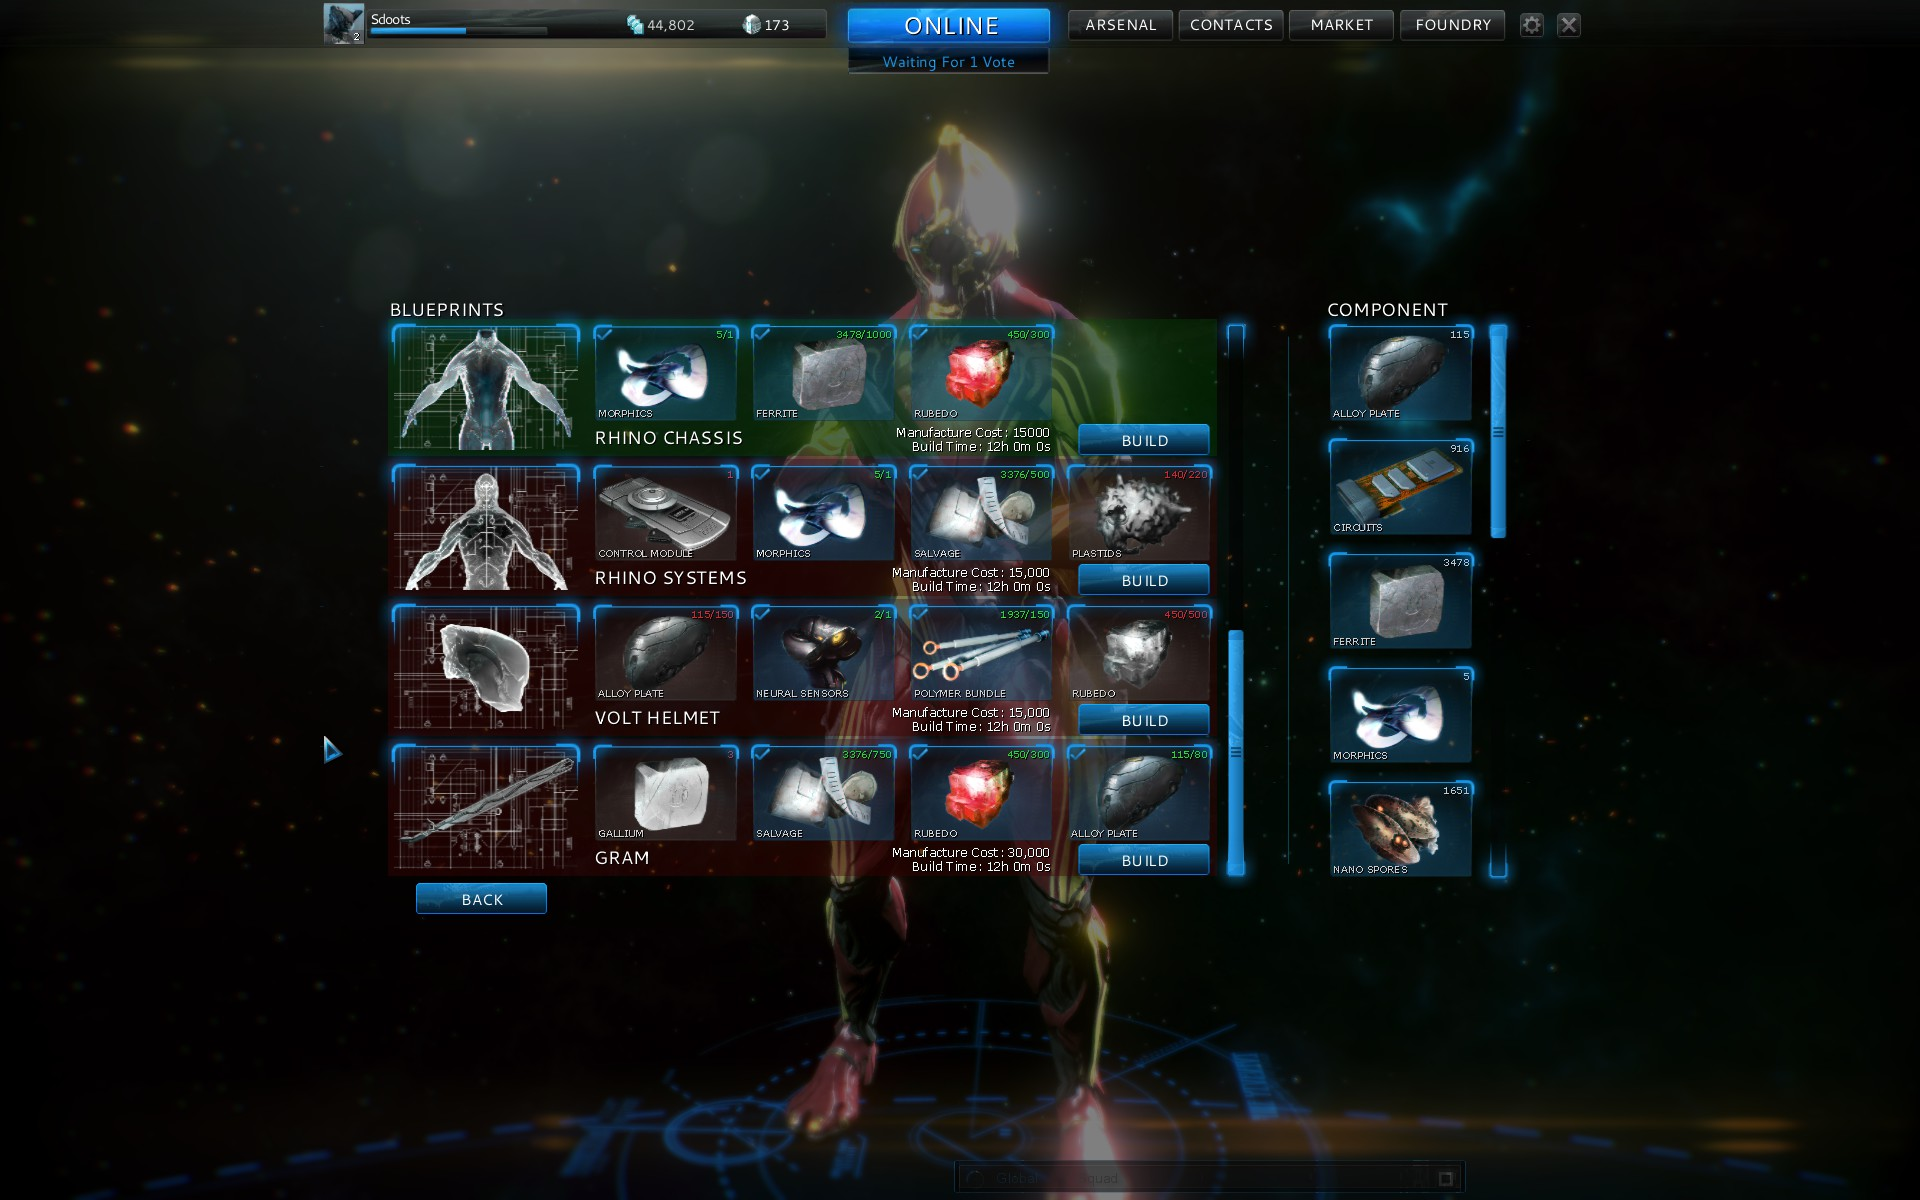 Warframe farming and progression guide guidescroll 230410screenshots2013 03 2600003 malvernweather Gallery